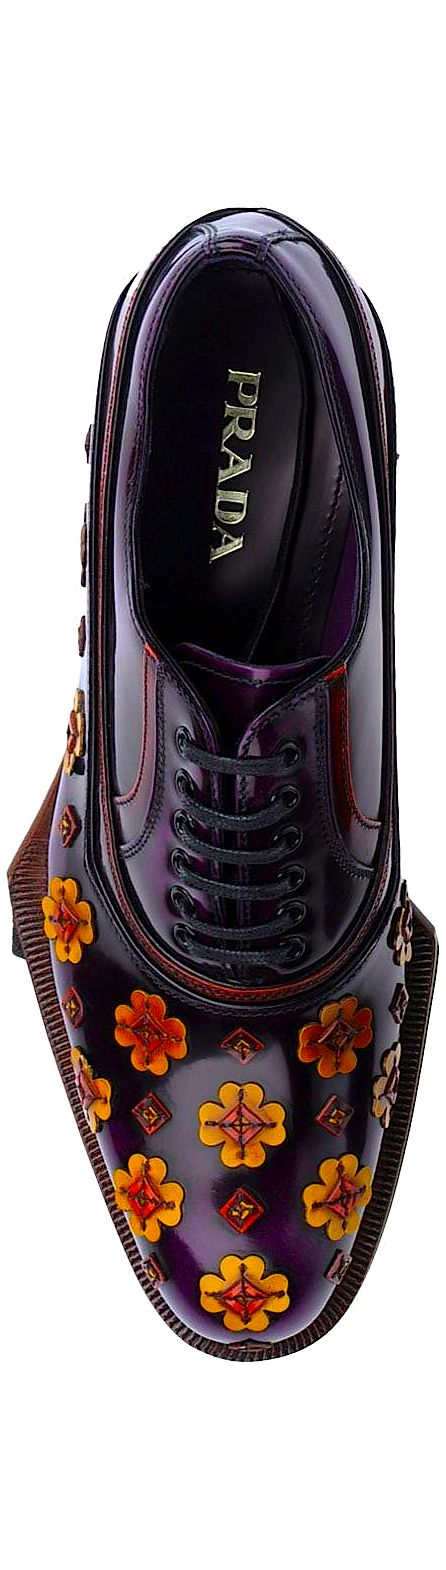 Prada what a shoe it looks like something the pope should only wear